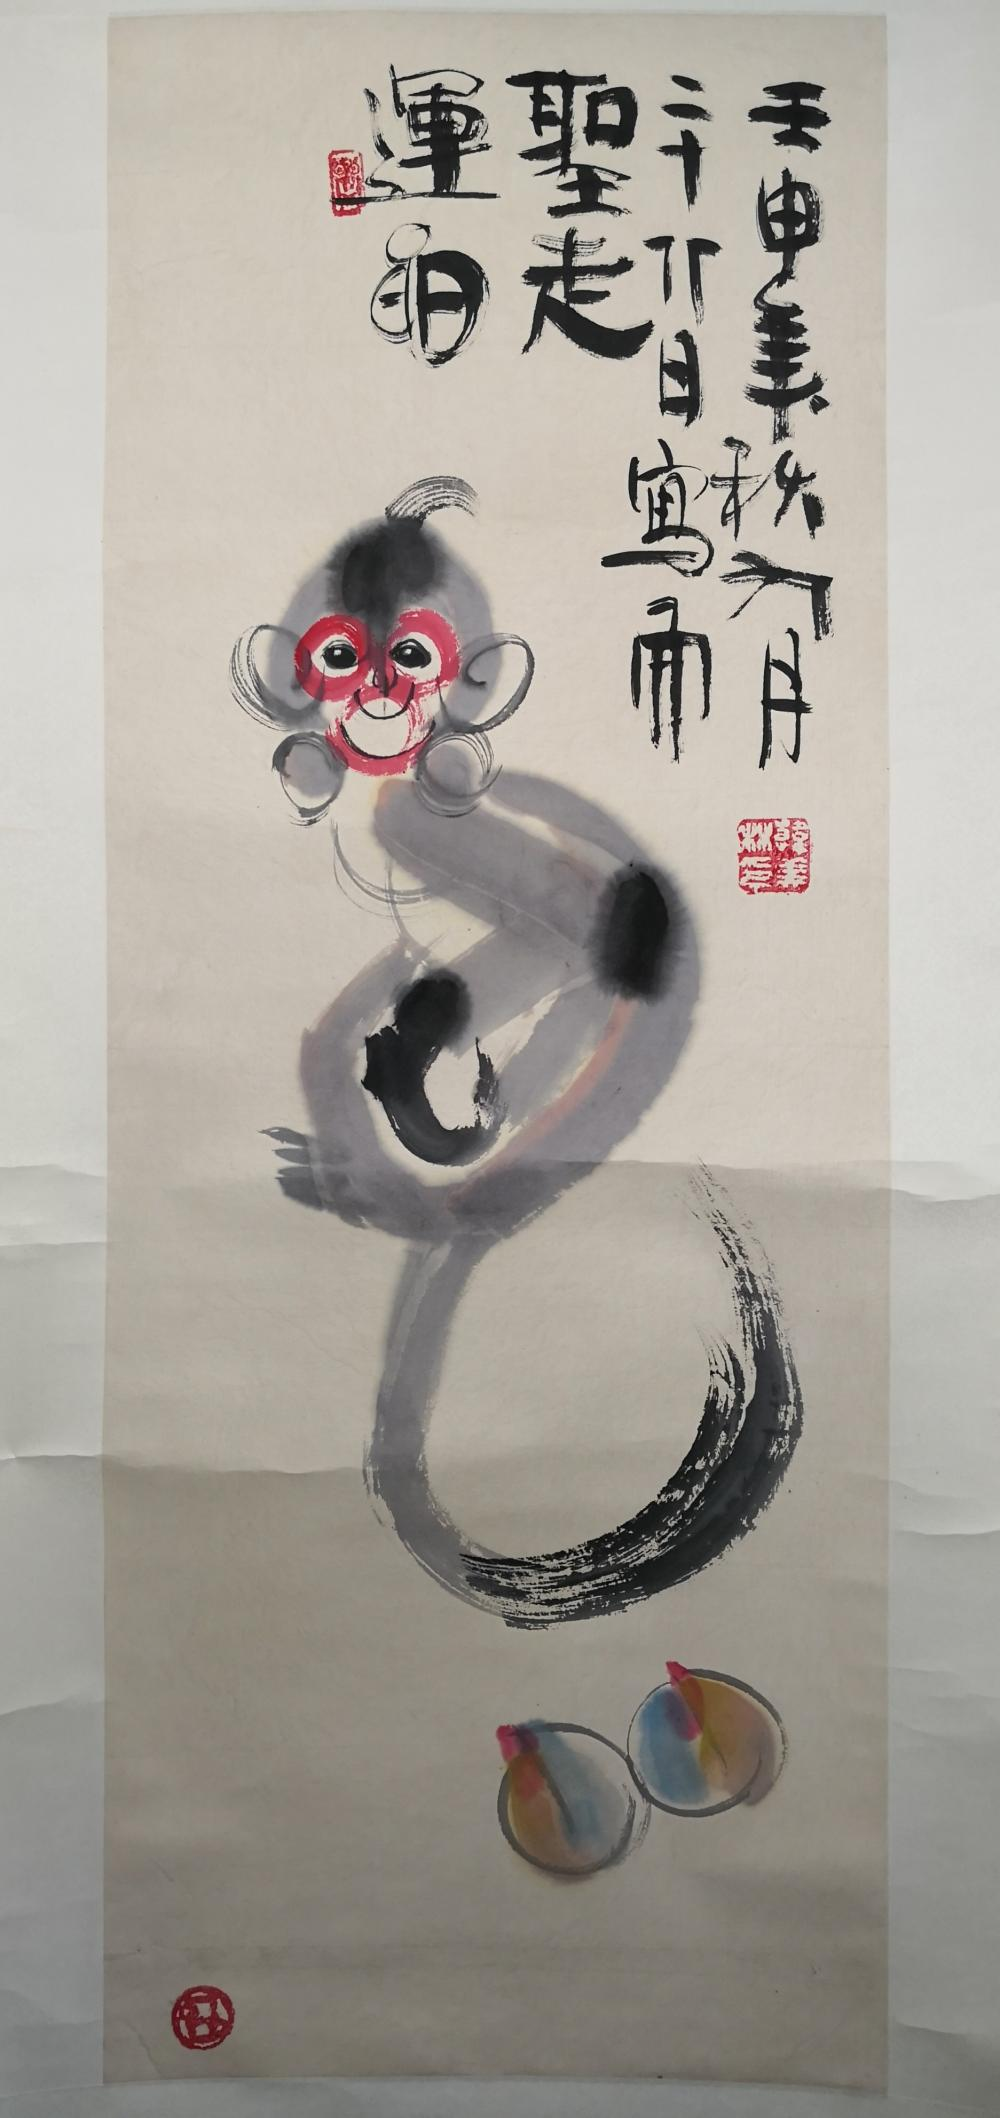 A CHINESE PAINTING BY HAN MEILIN